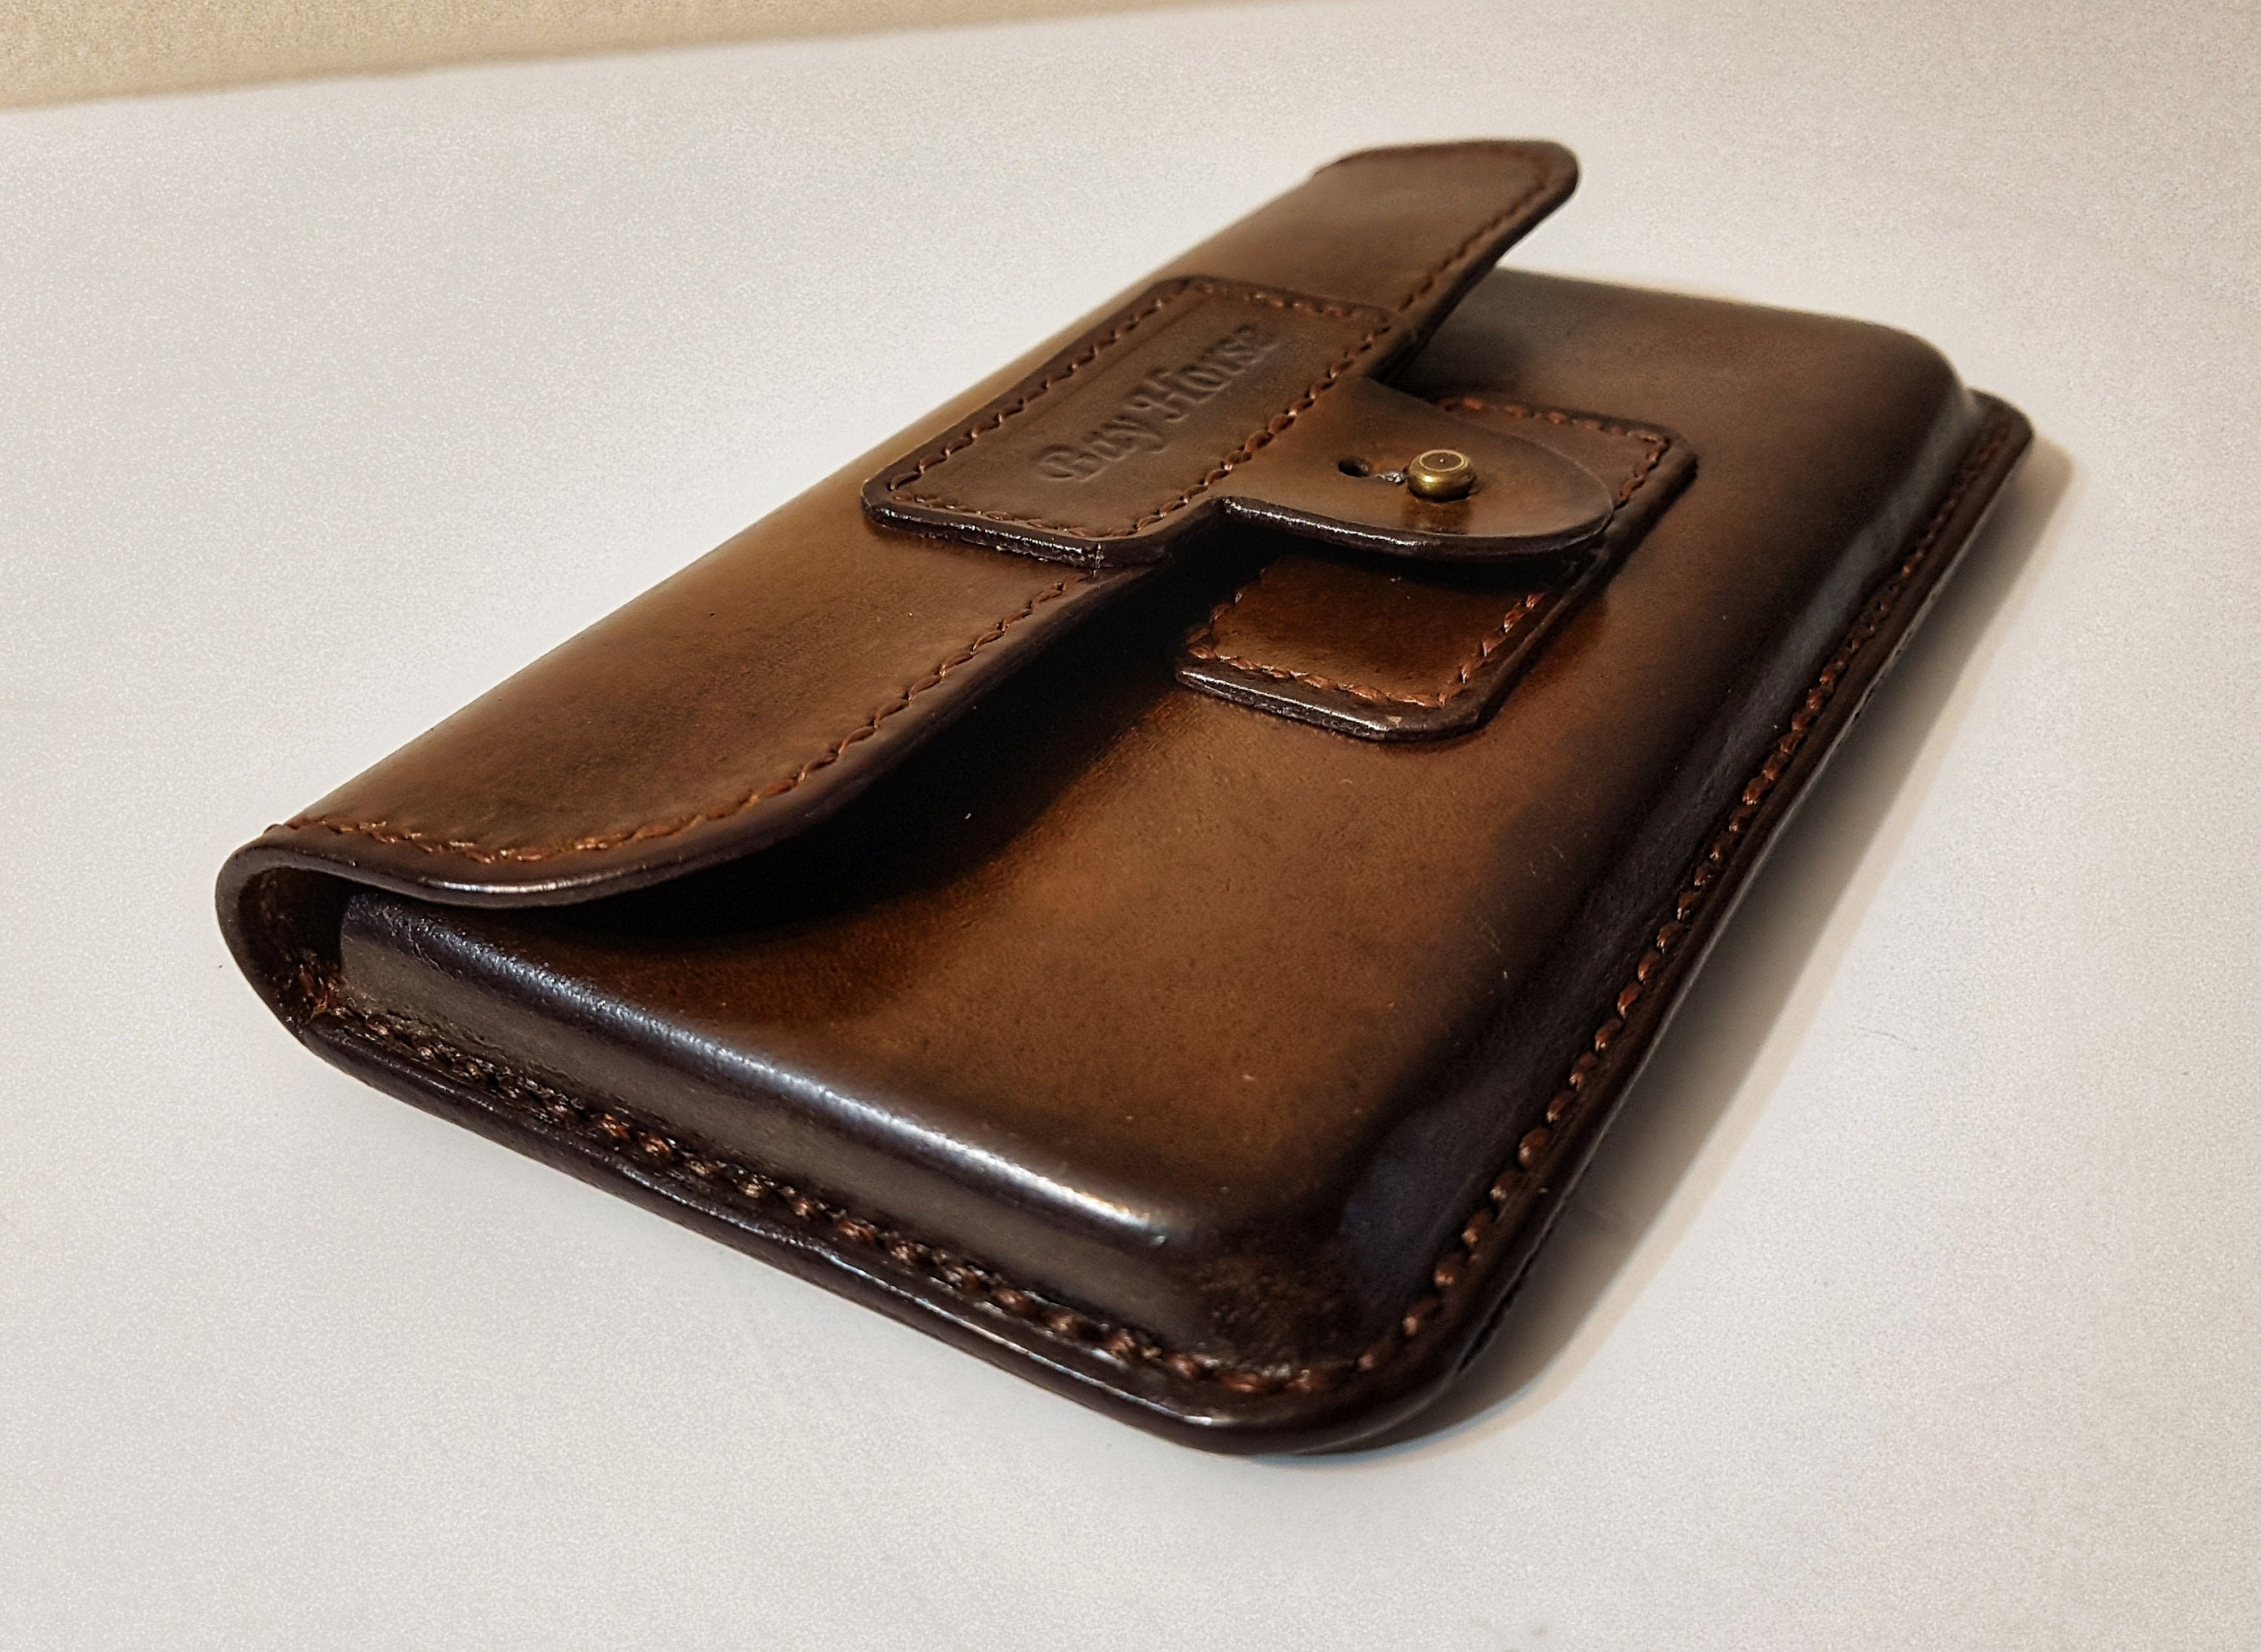 iphone xs max leather phone case